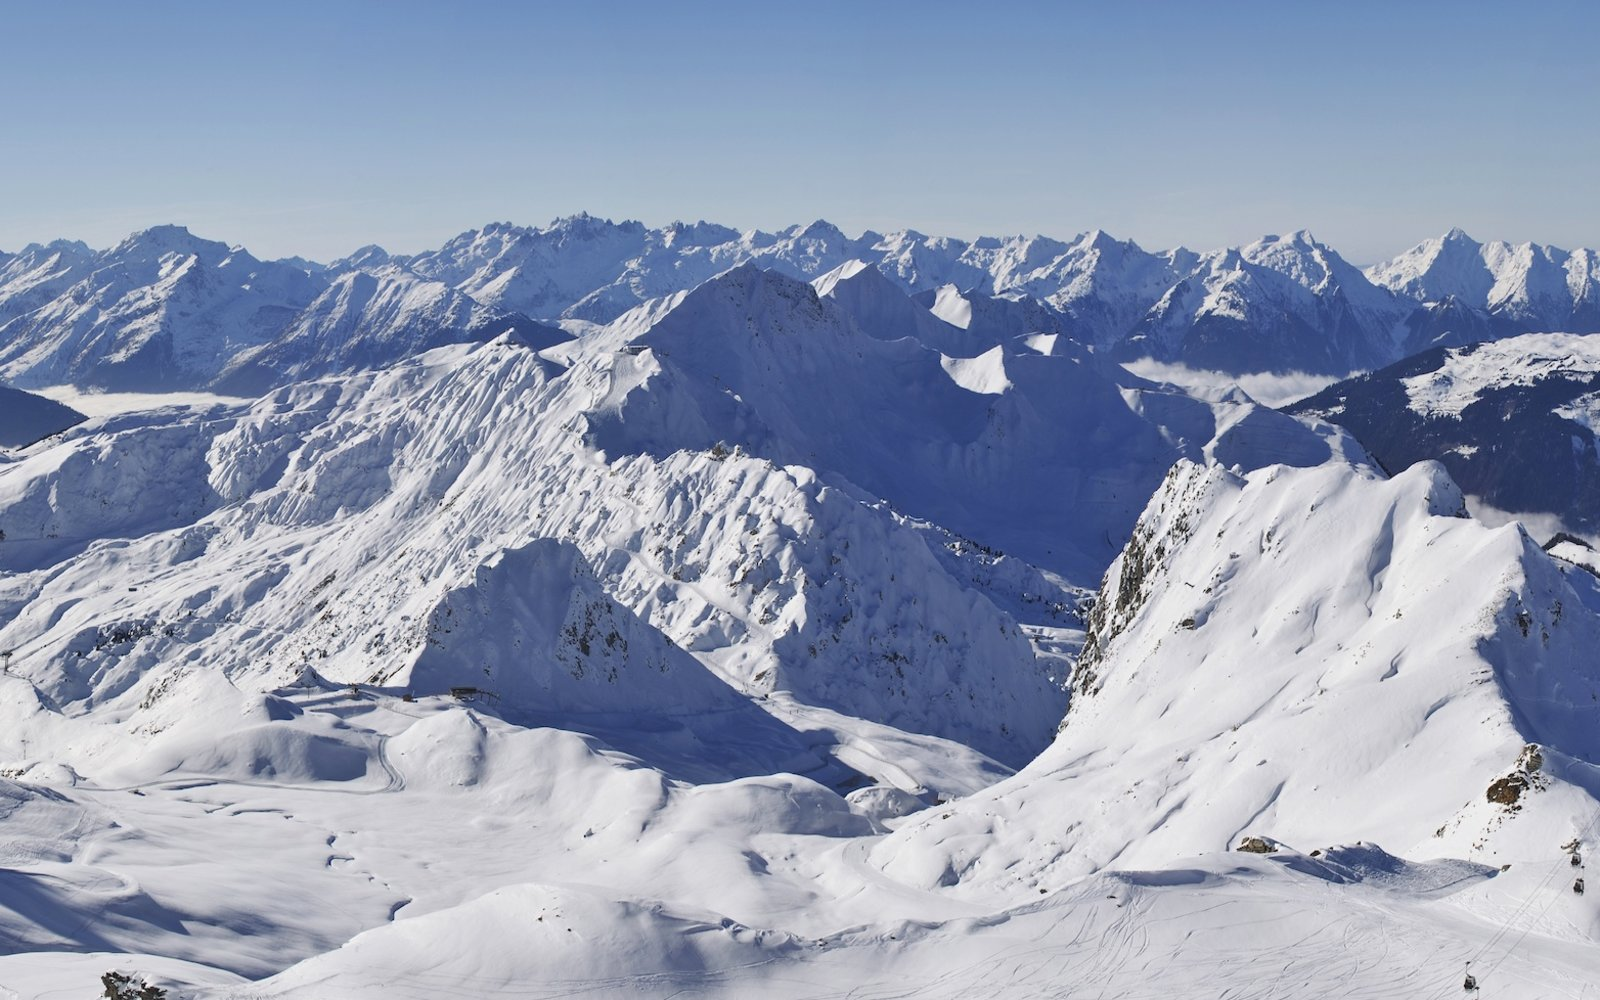 Christmas 'Miracle': Boy Survives 40-Minute Avalanche Burial in French Alps